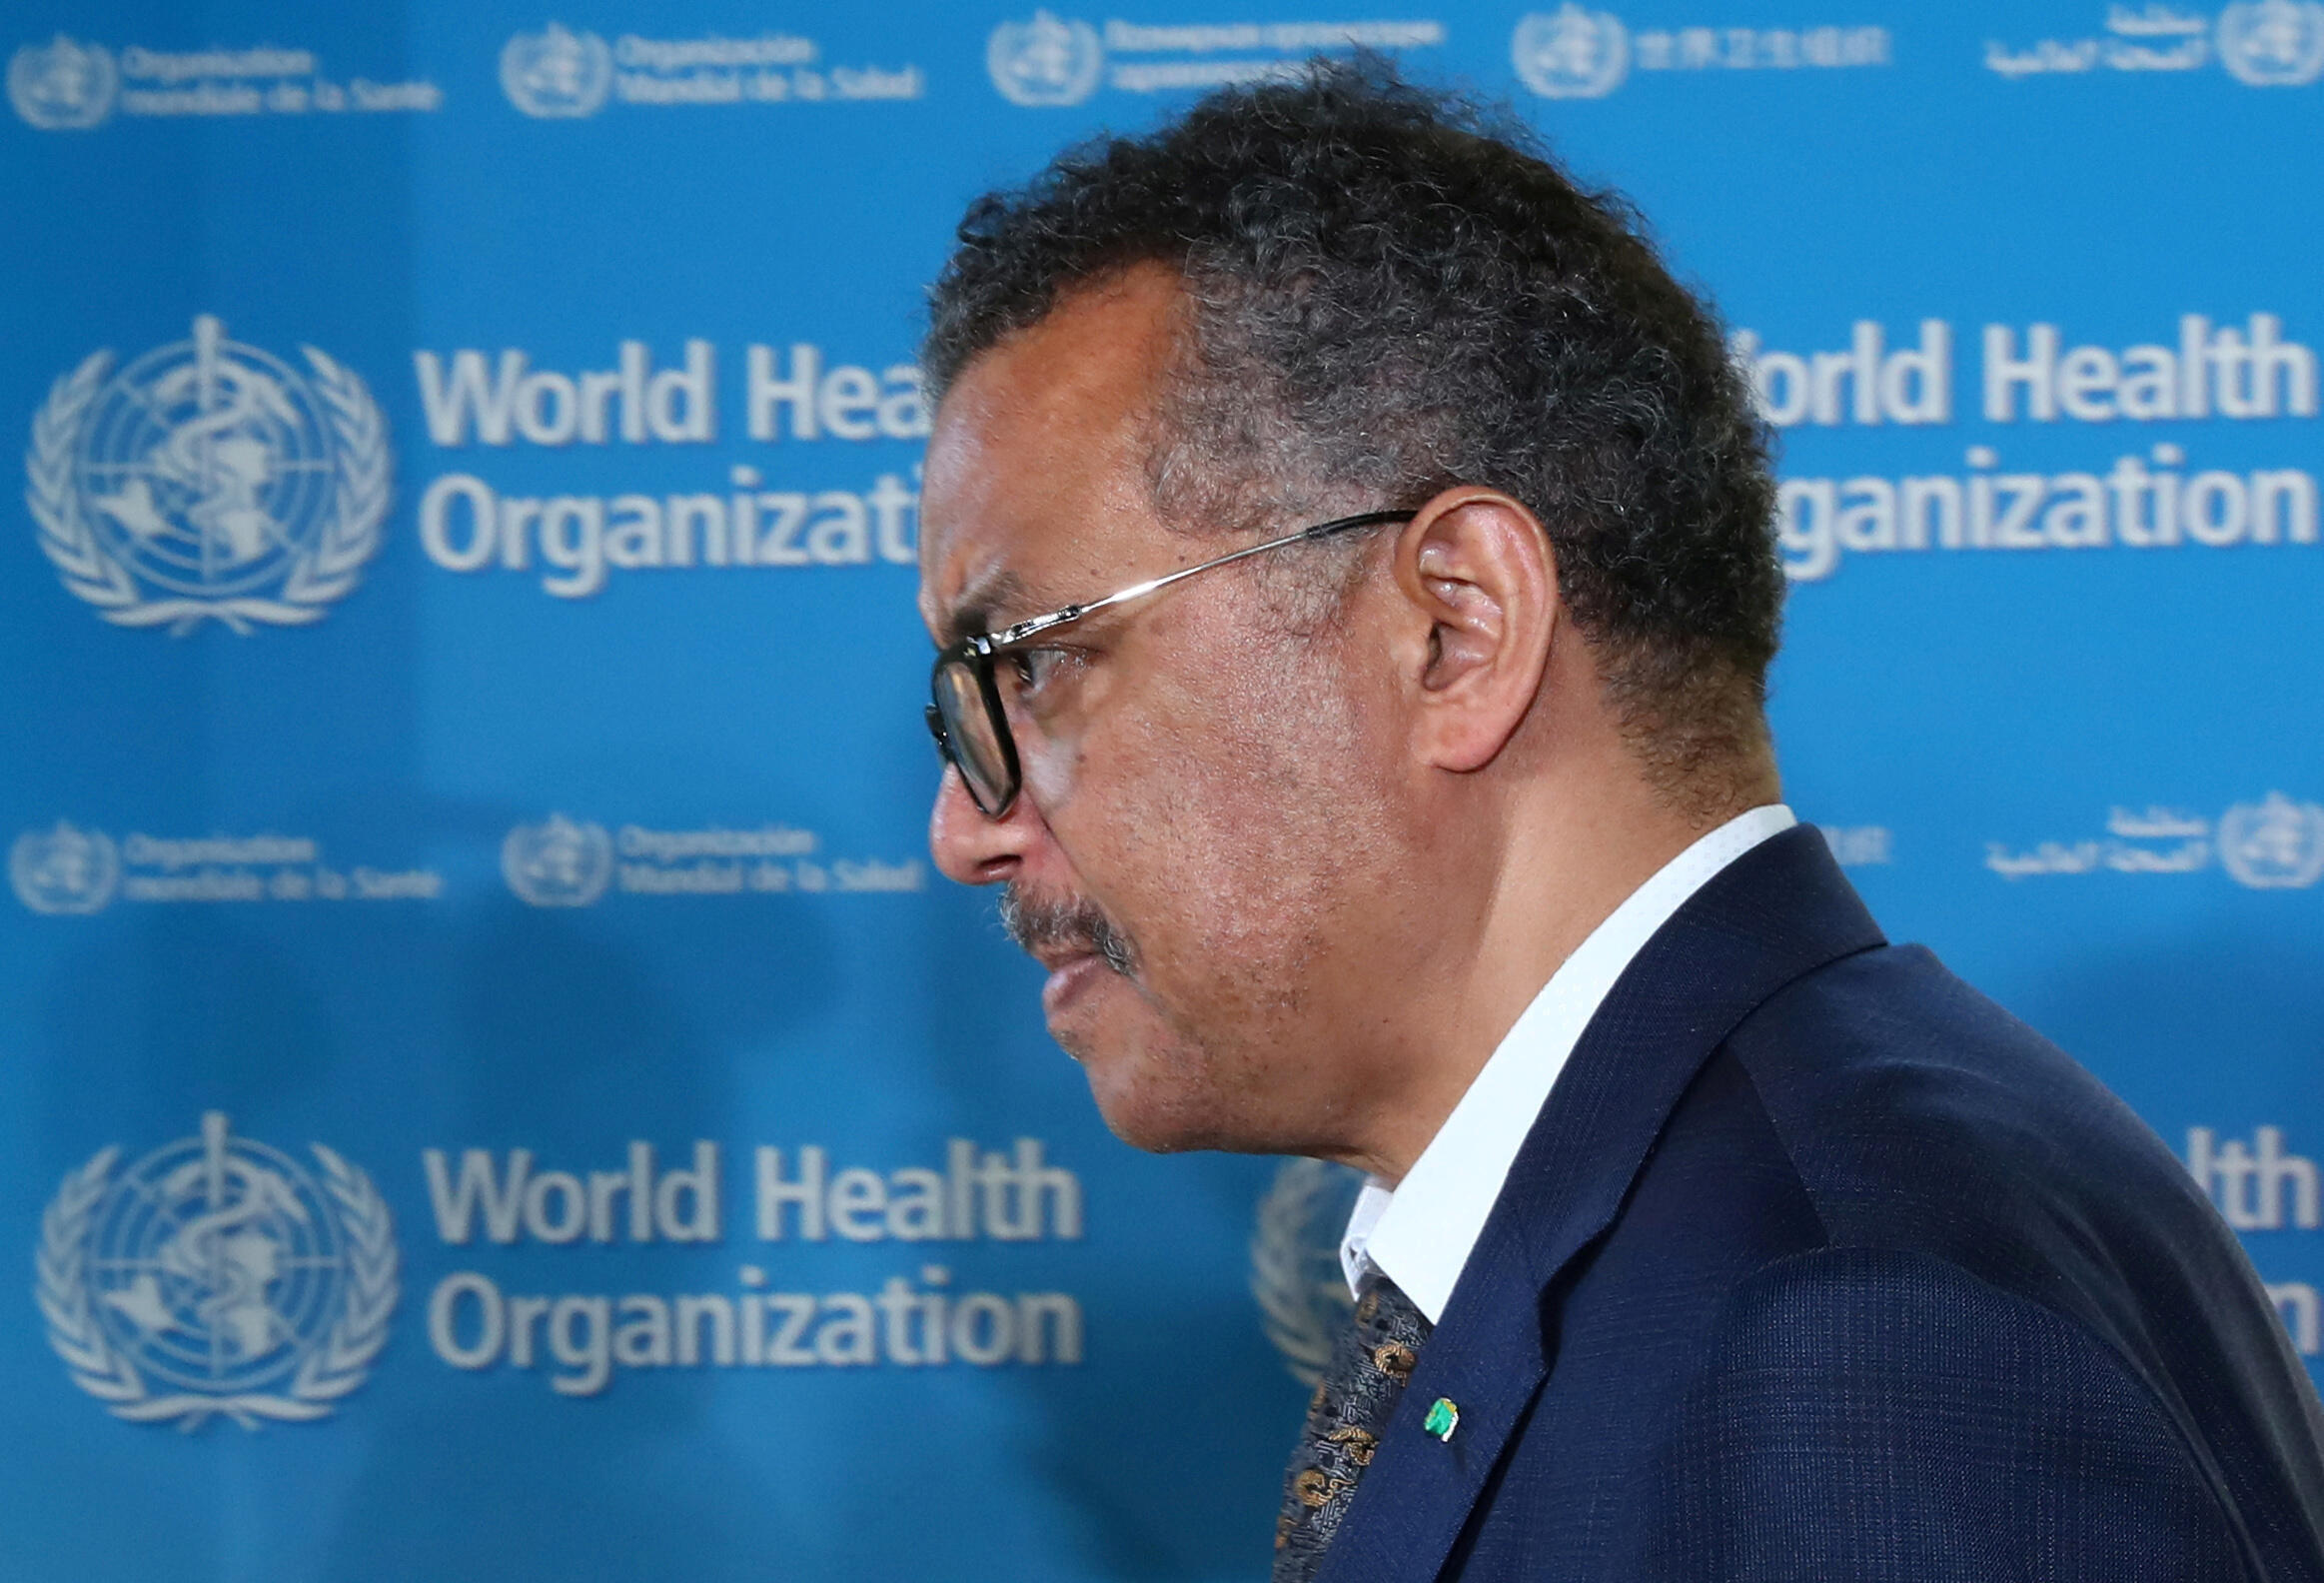 Tedros Adhanom Ghebreyesus, director general of the World Health Organization (WHO), attends a news conference in Geneva, Switzerland on June 25, 2020.